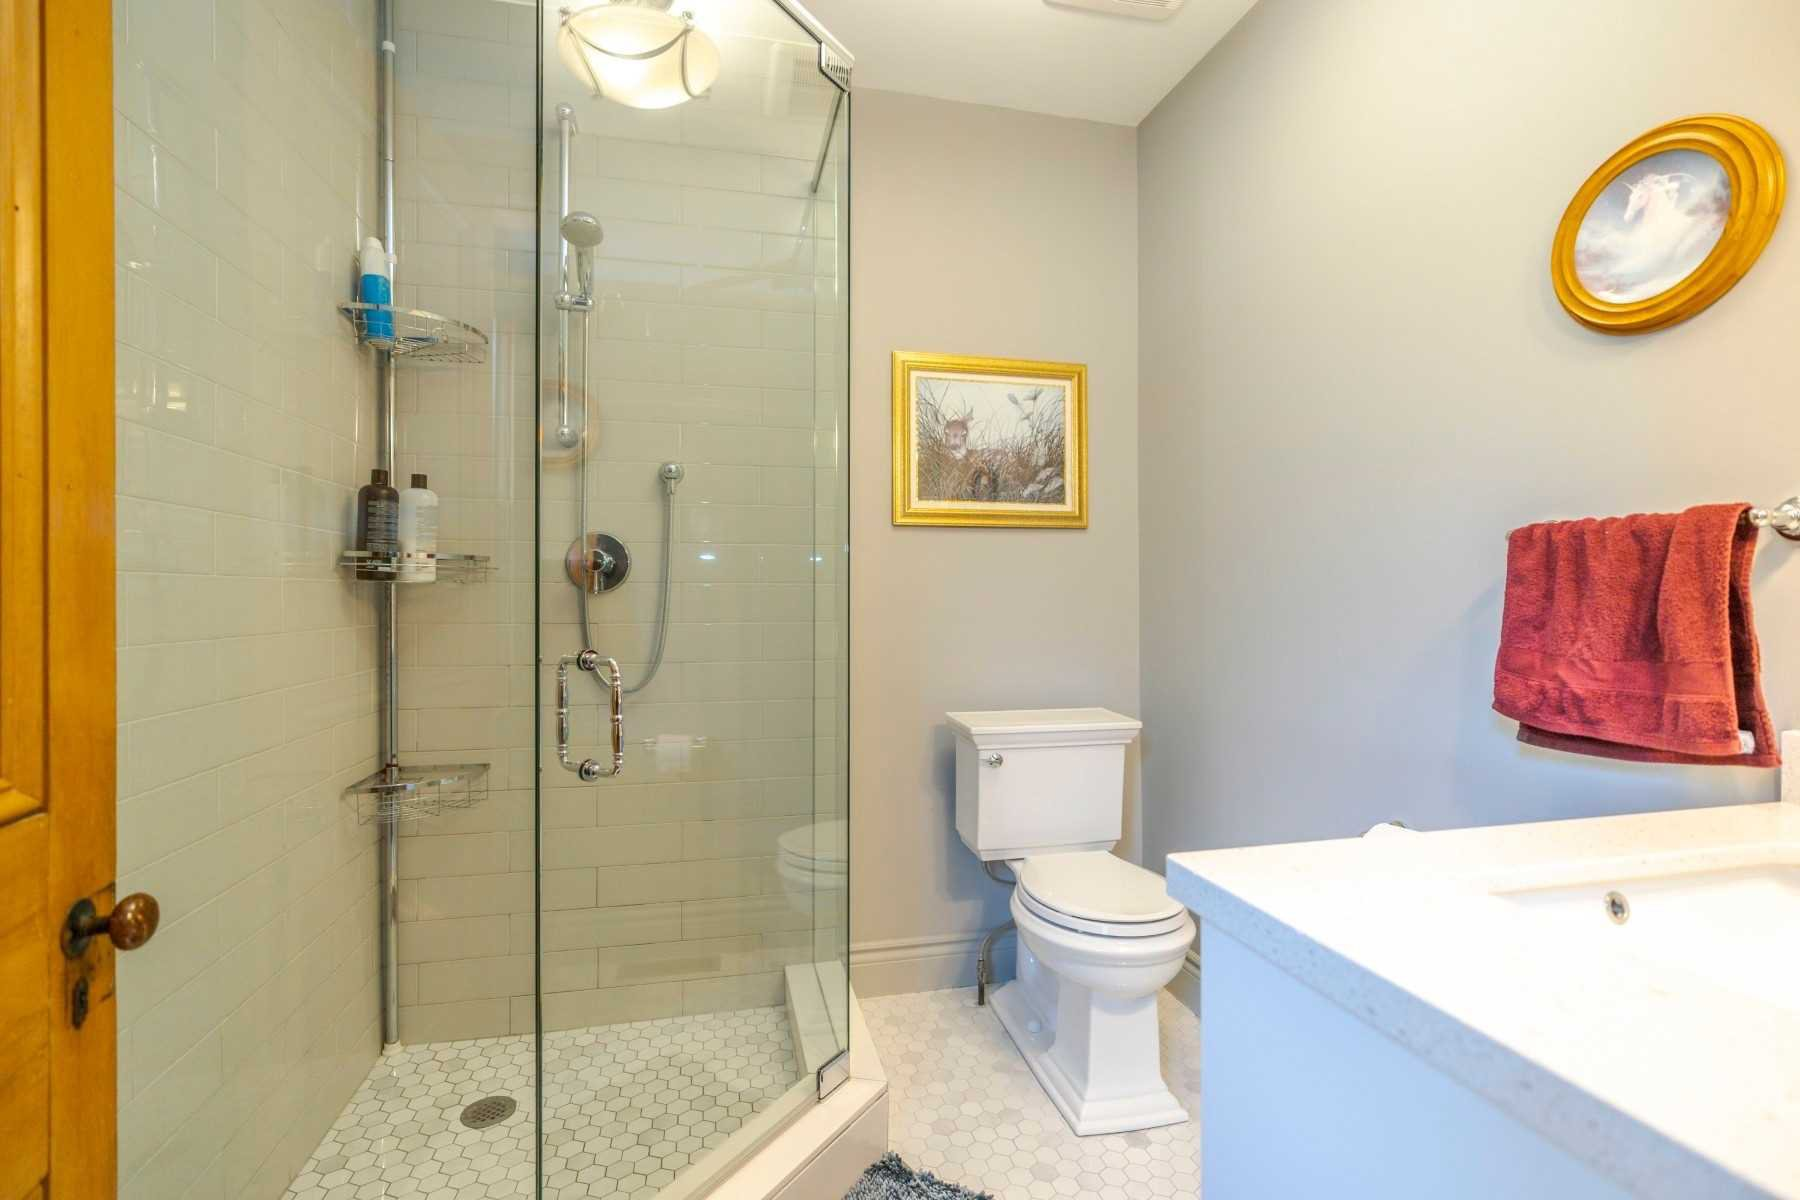 Photo 7: Photos: 1009 S Centre Street in Whitby: Downtown Whitby House (Bungalow) for sale : MLS®# E4714116